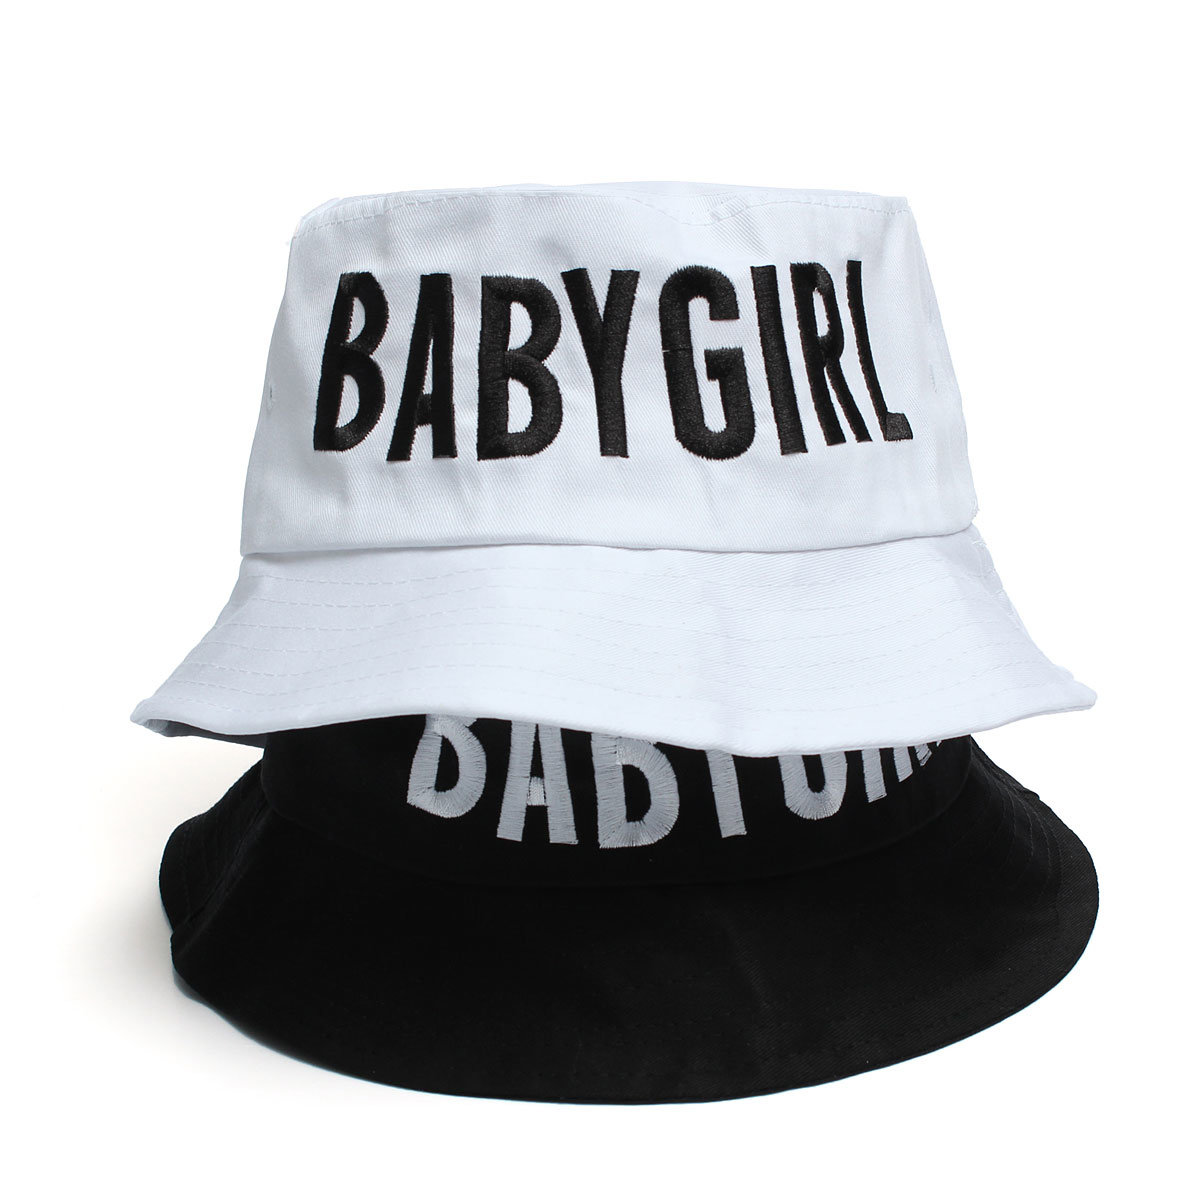 babygirl style women s boonie fishing bucket hat letters casual outdoor cap  at Banggood sold out c1672f7ab5